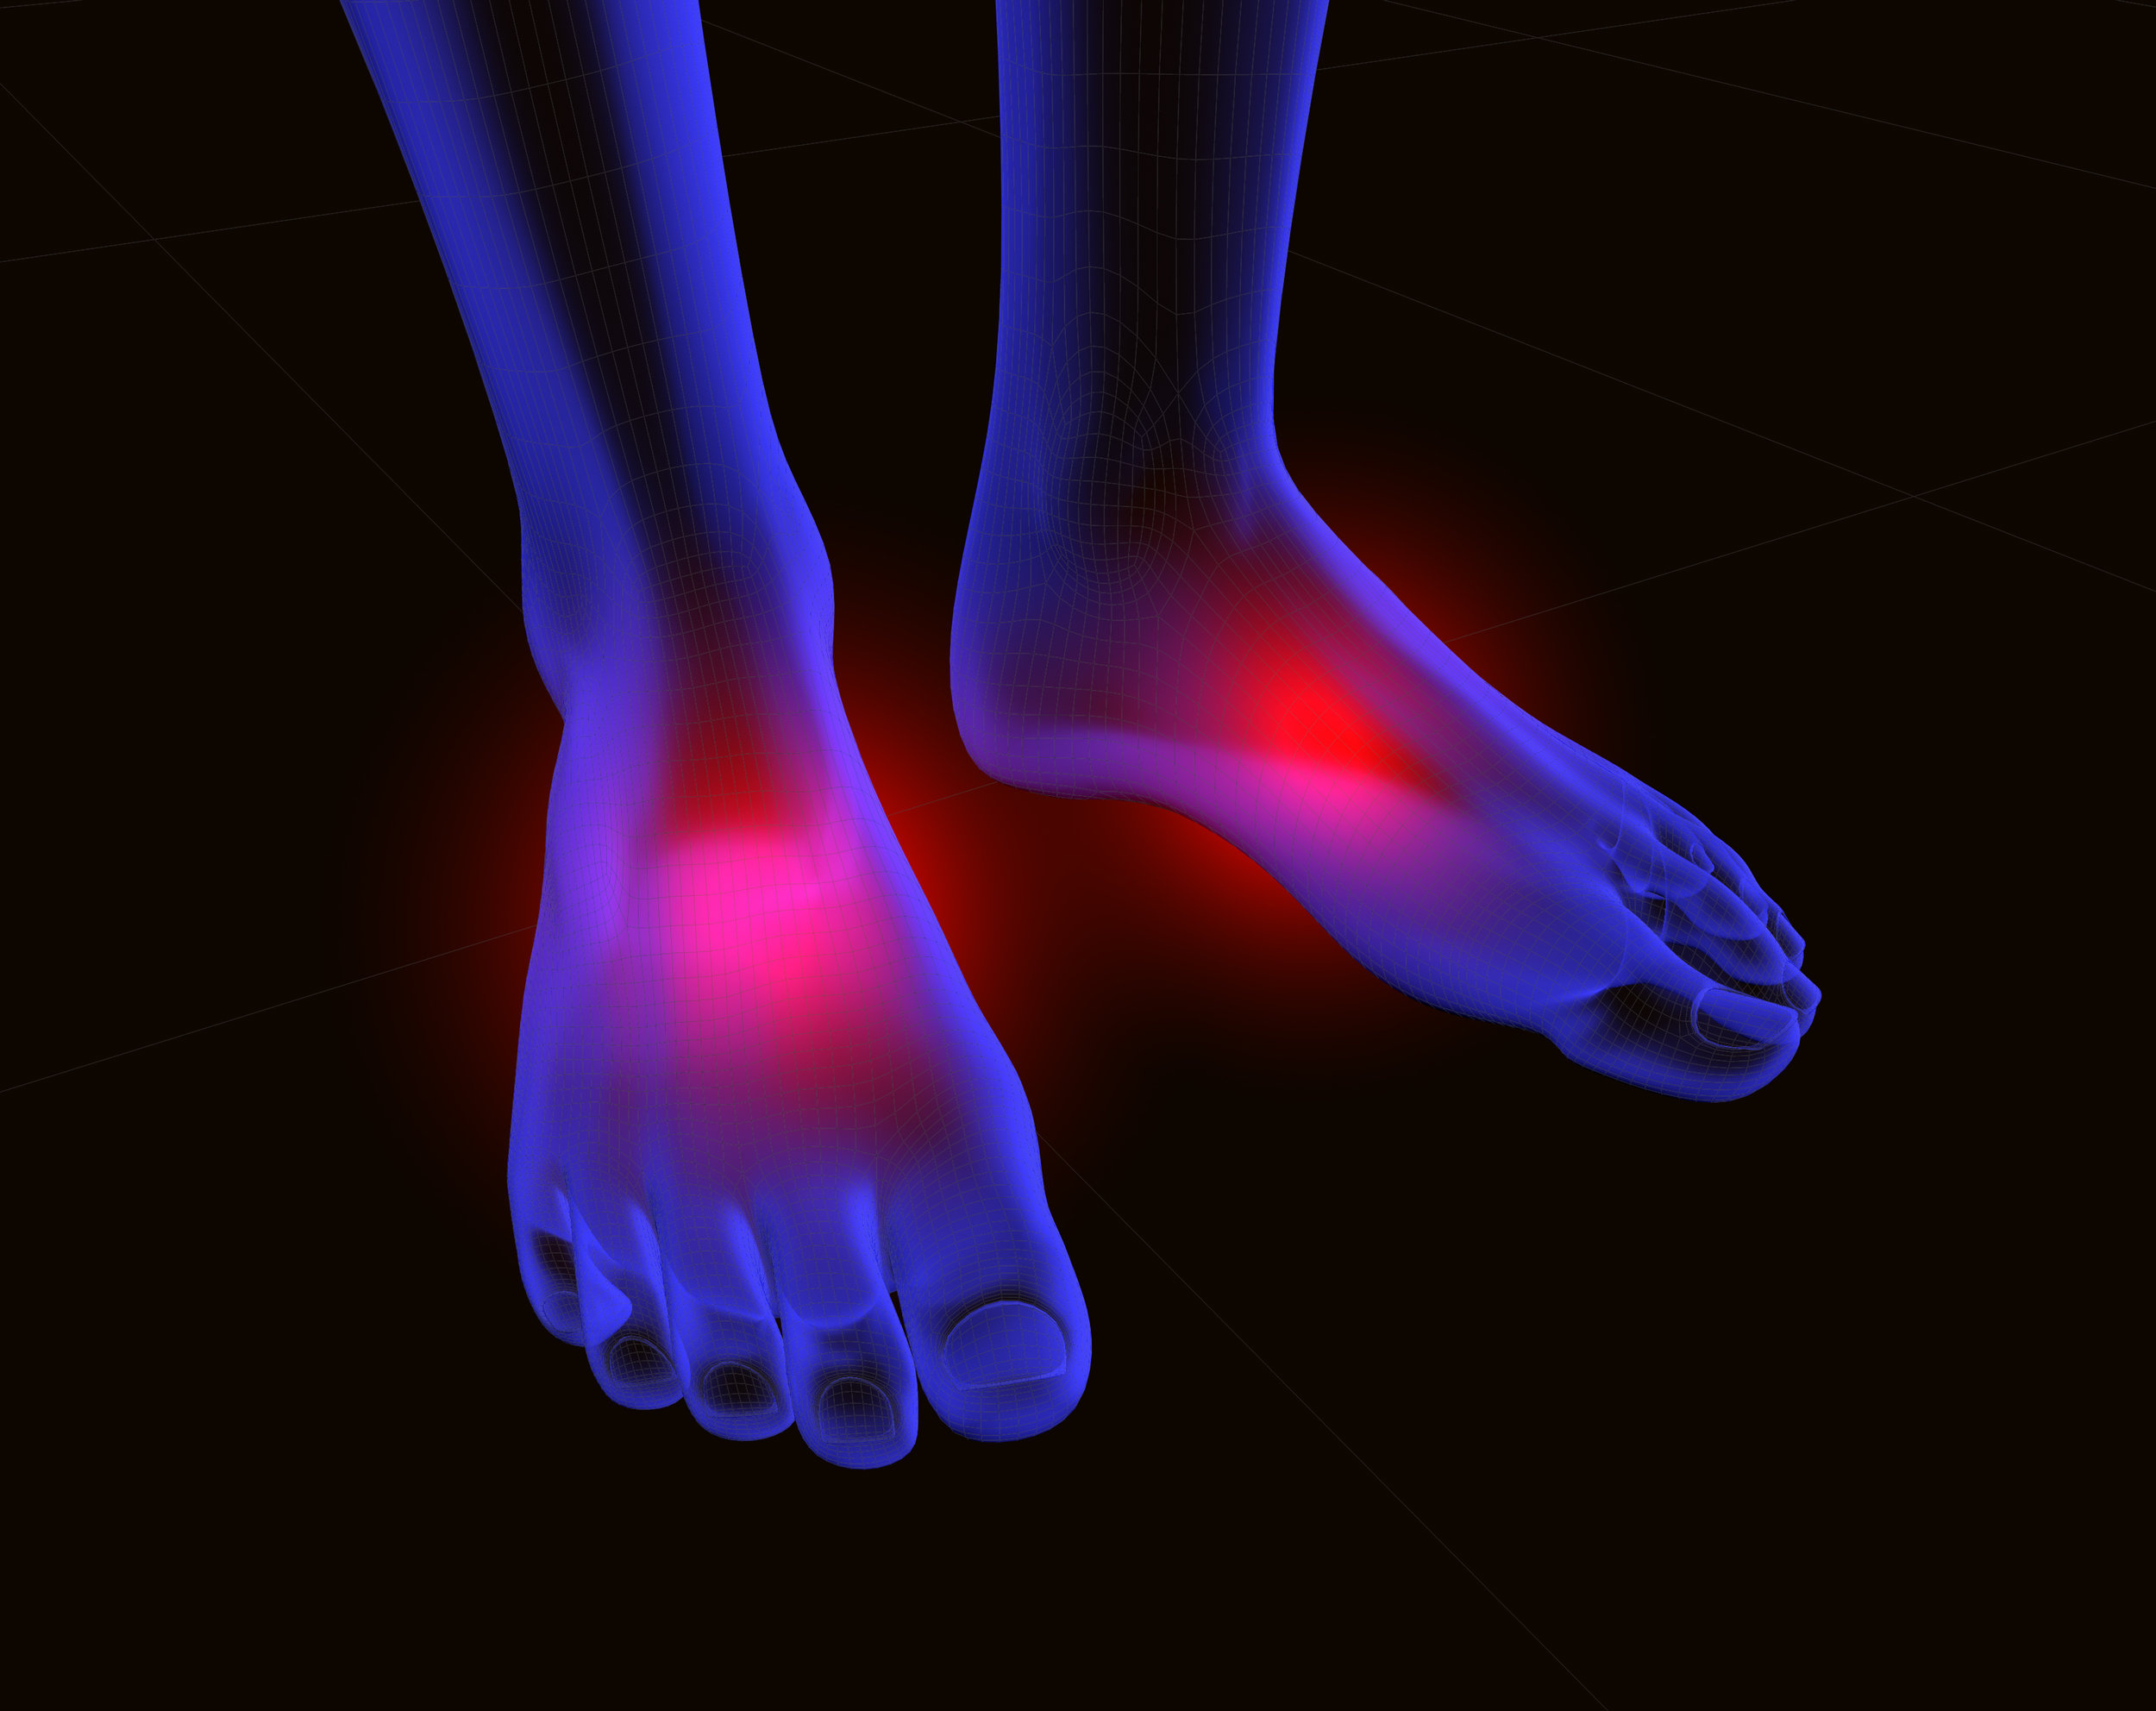 neuropathy pain specialist podiatrist manalapan nj